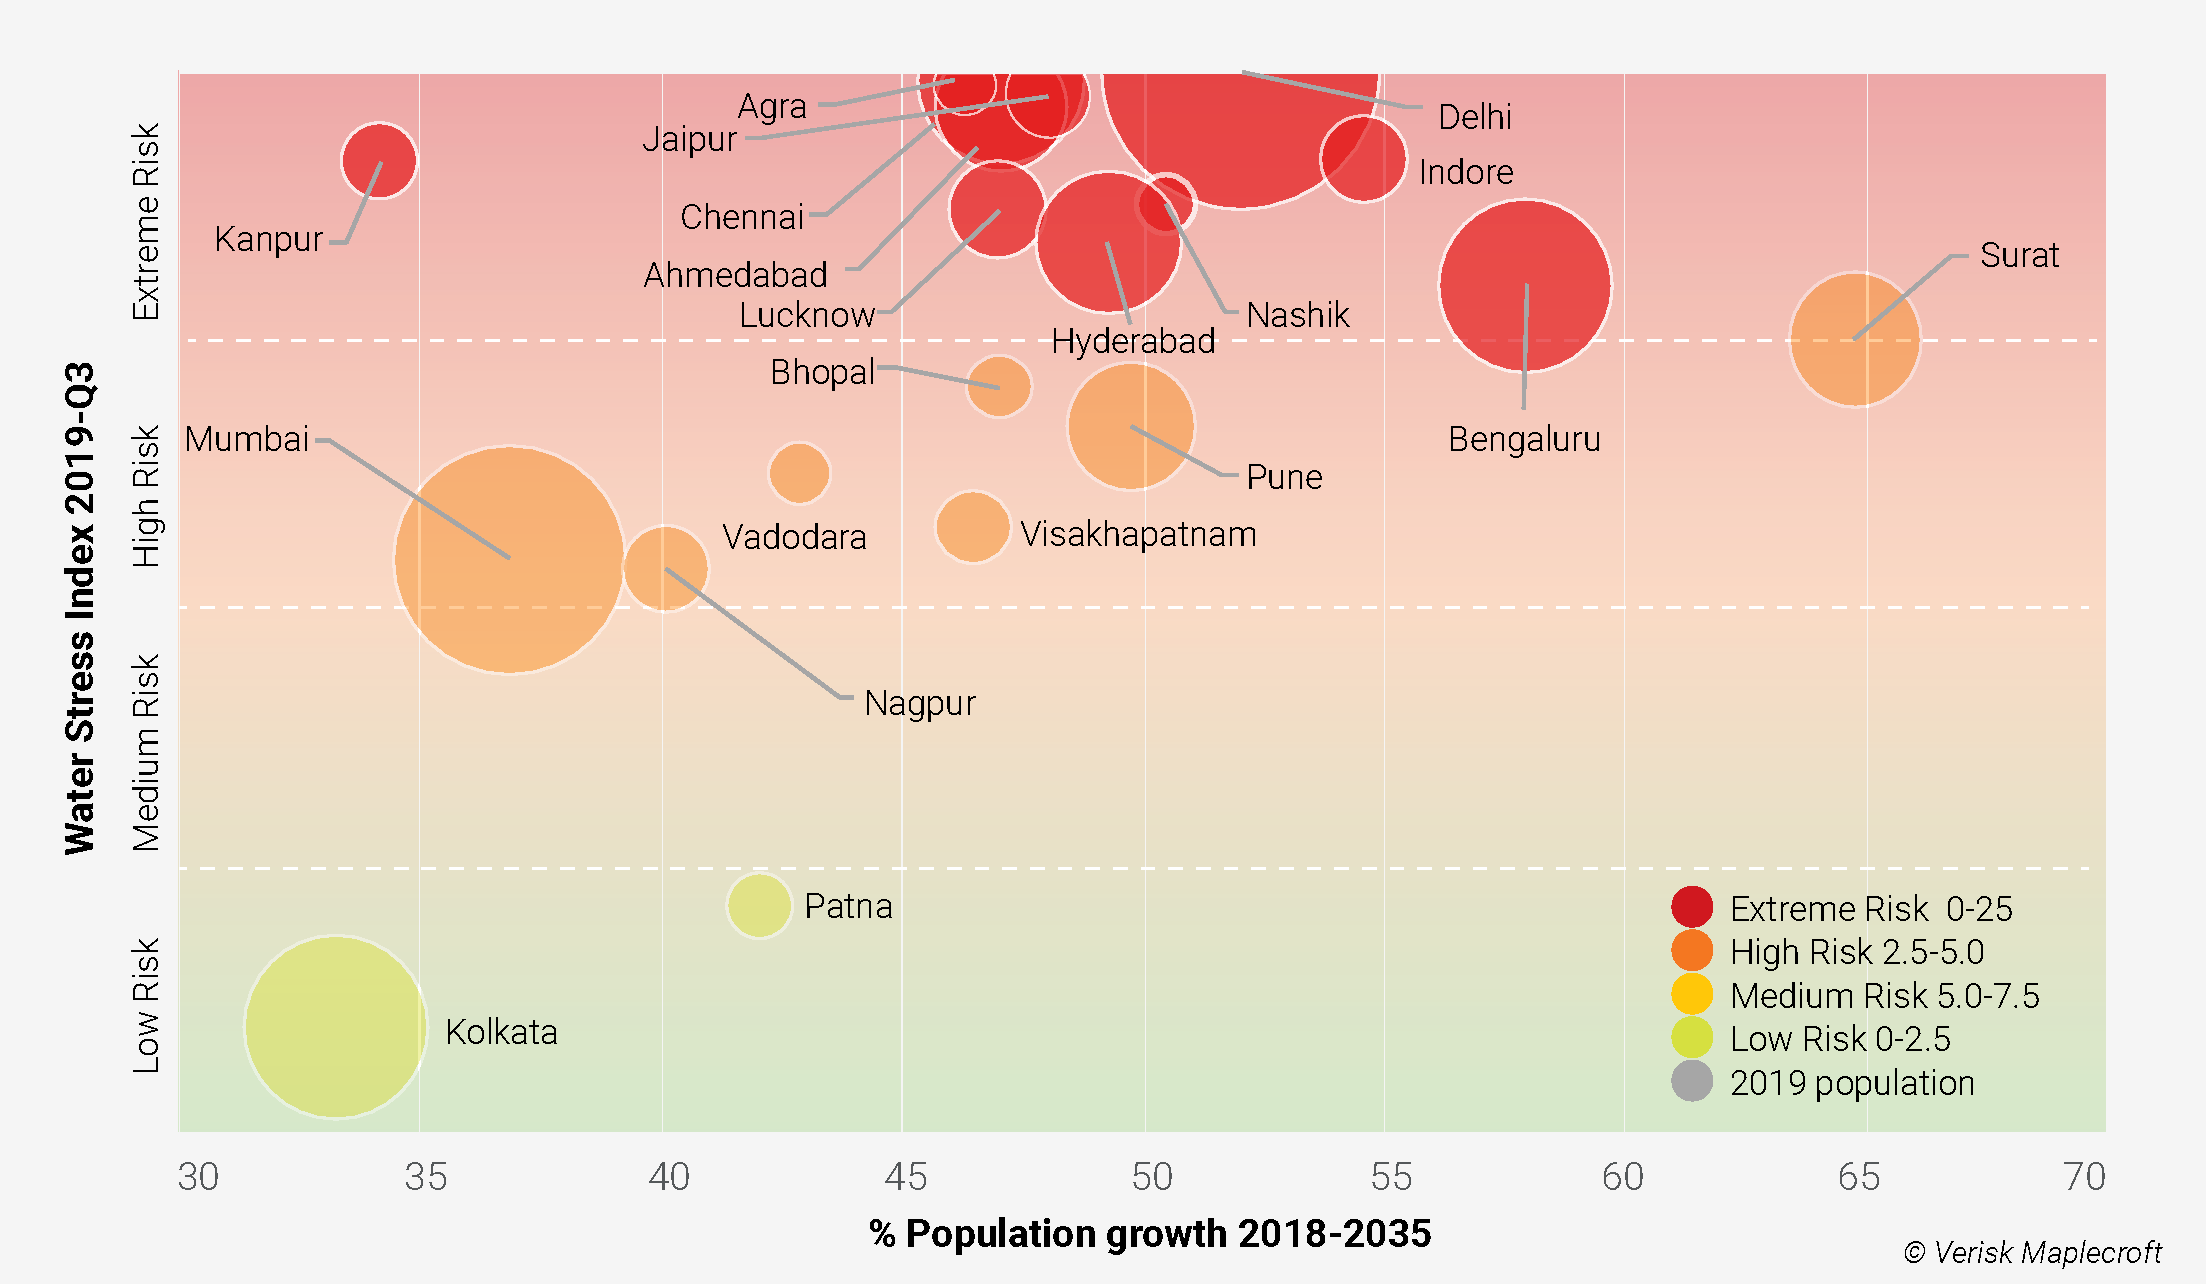 Indian cities face the dual pressures of water stress and growing population demand